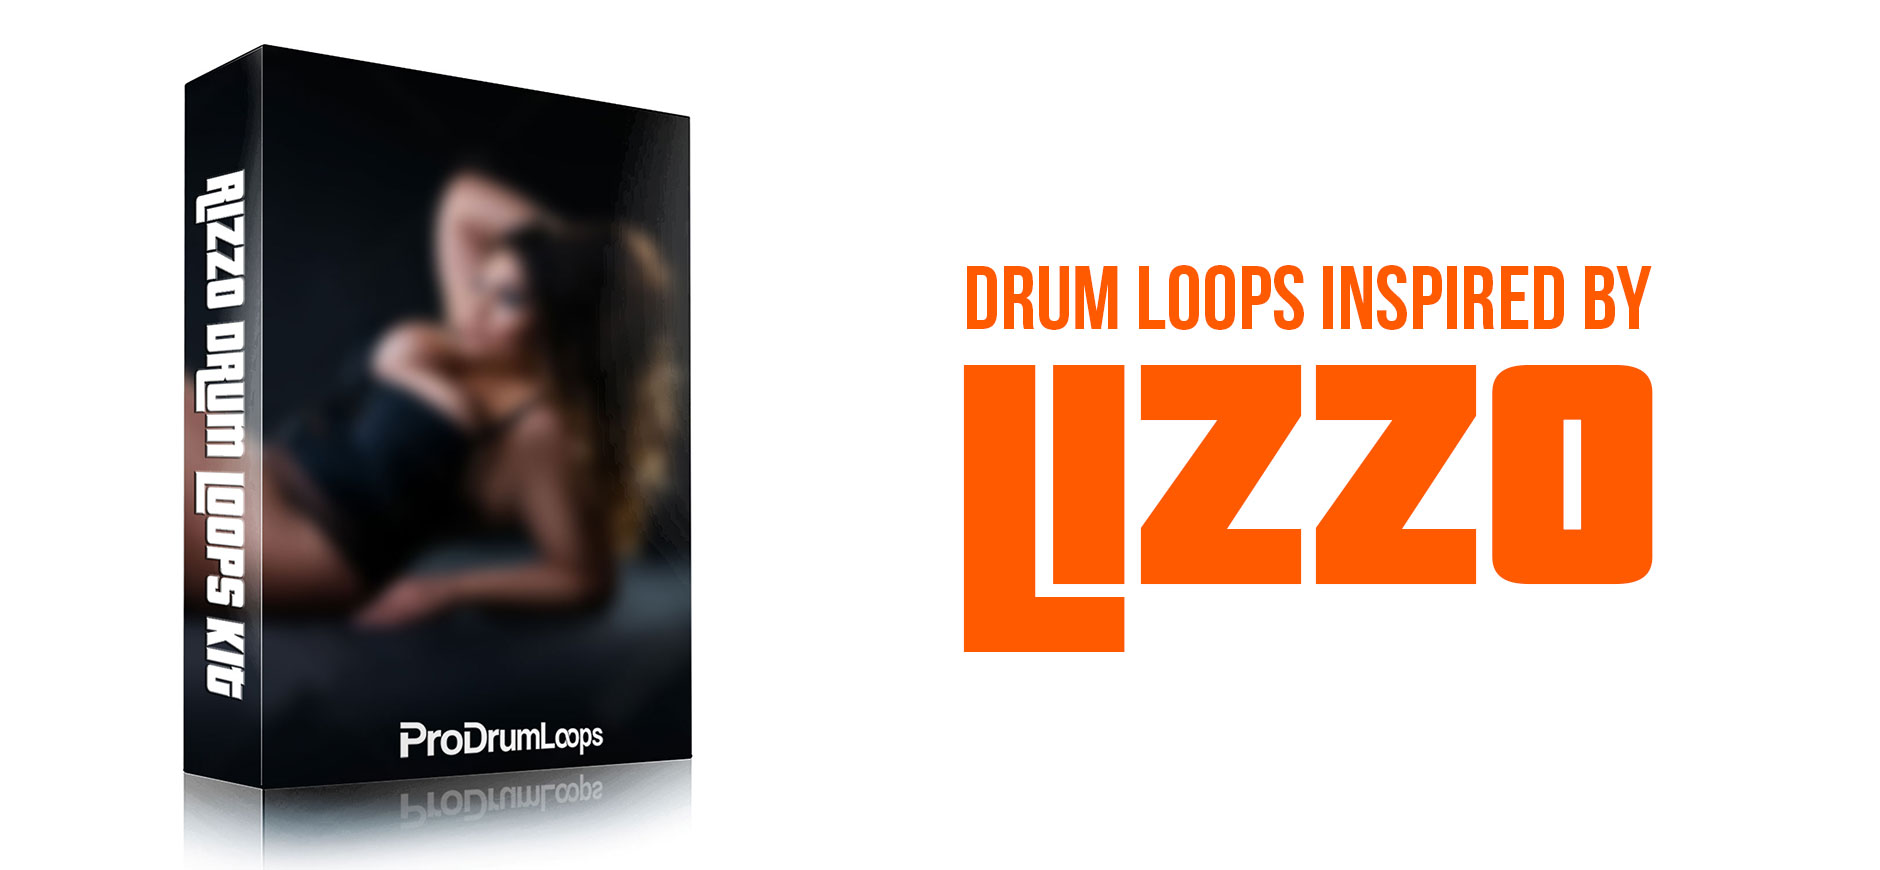 Drum Loops Kit Inspired by Lizzo's Hit Songs